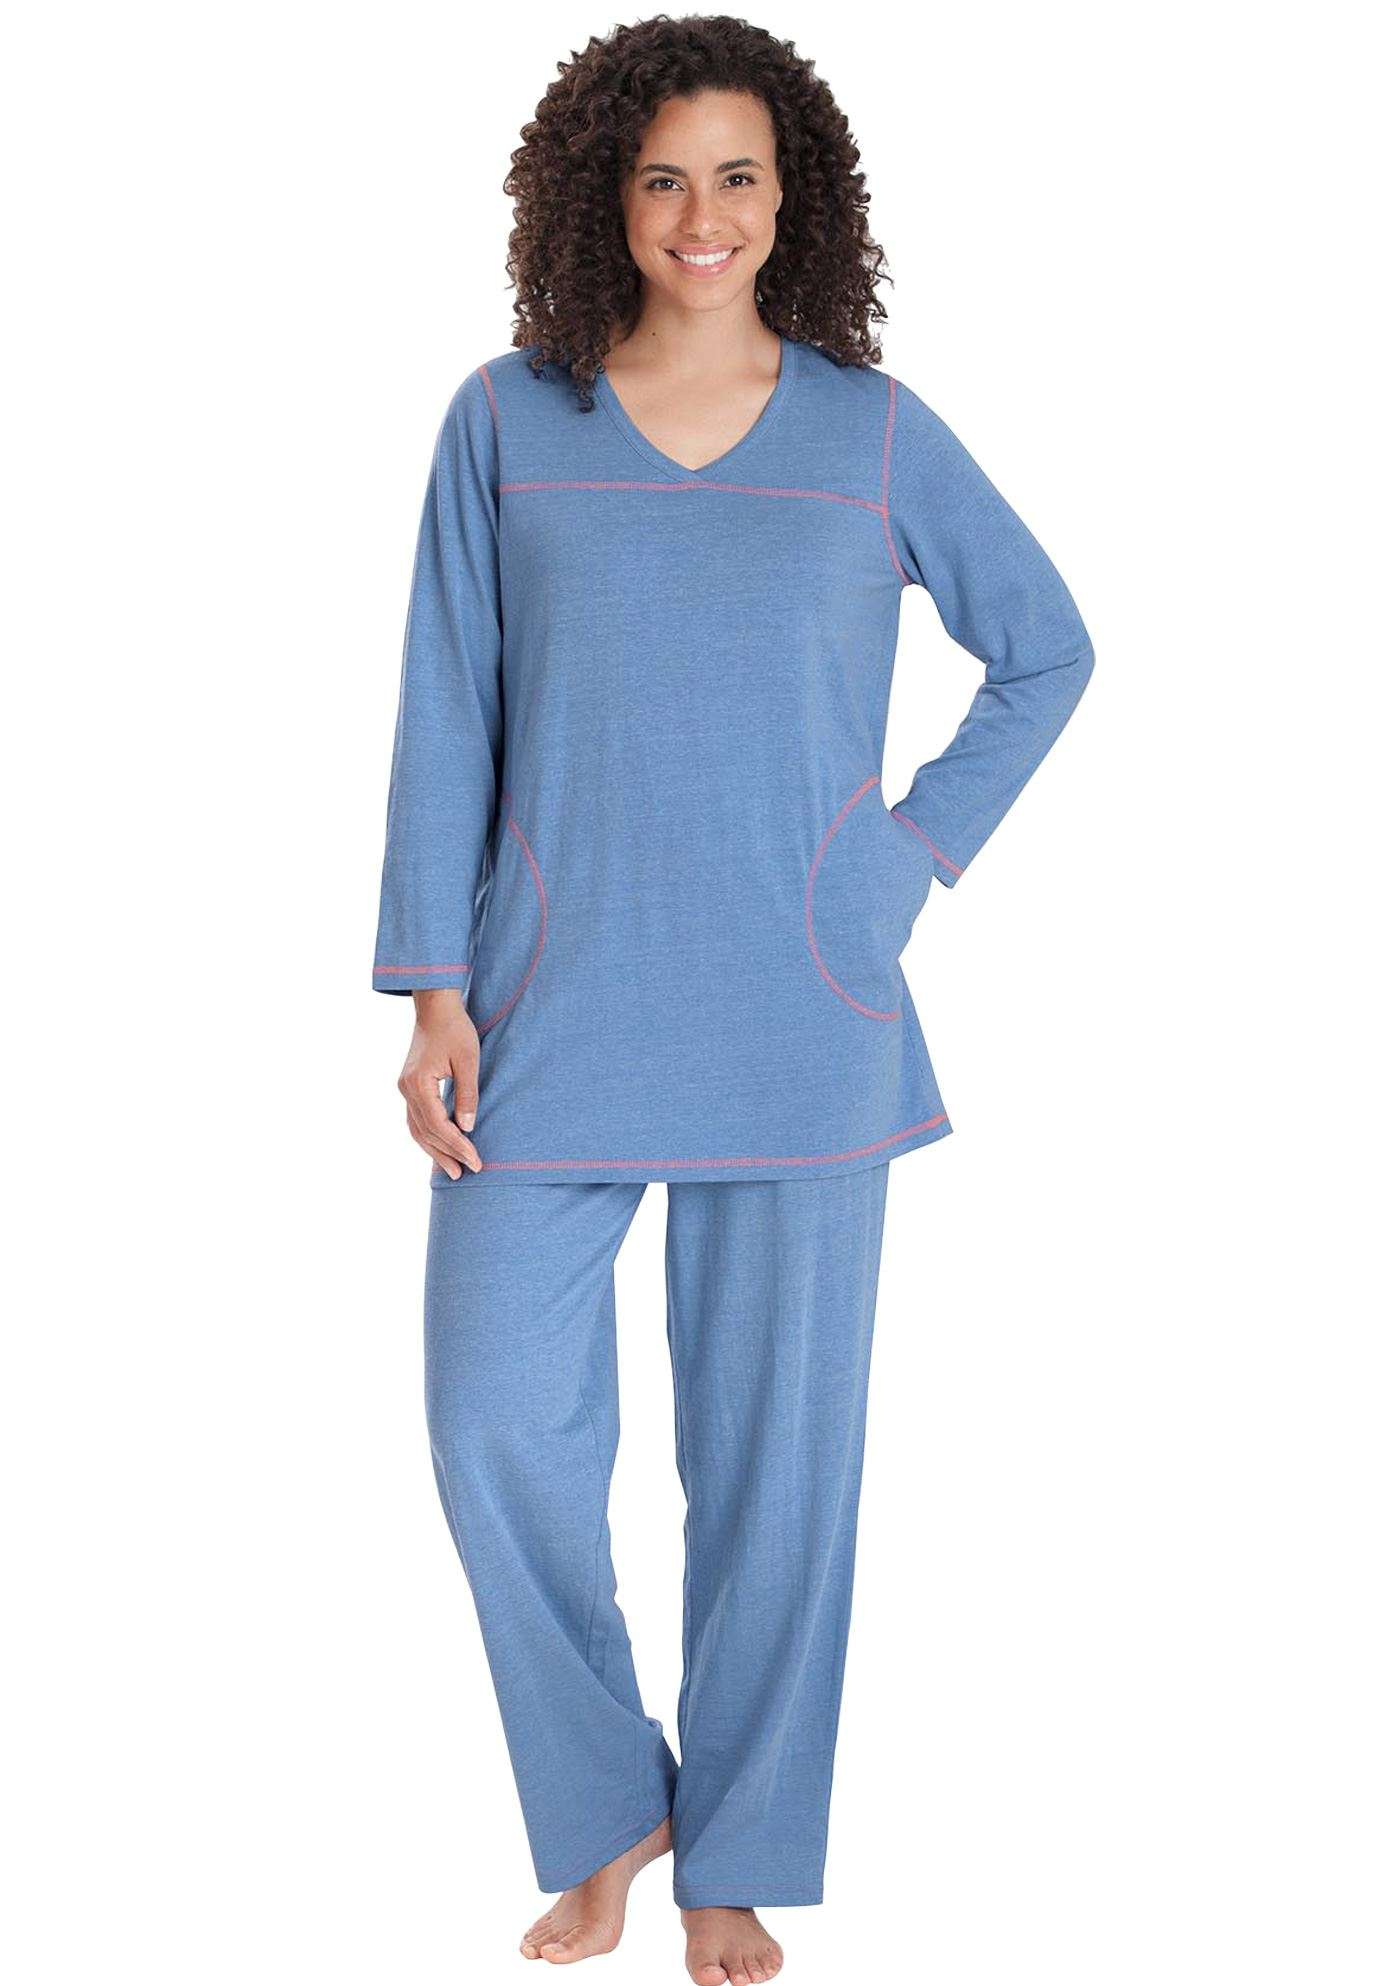 Topstitched PJ Set by Dreams & Co.®,